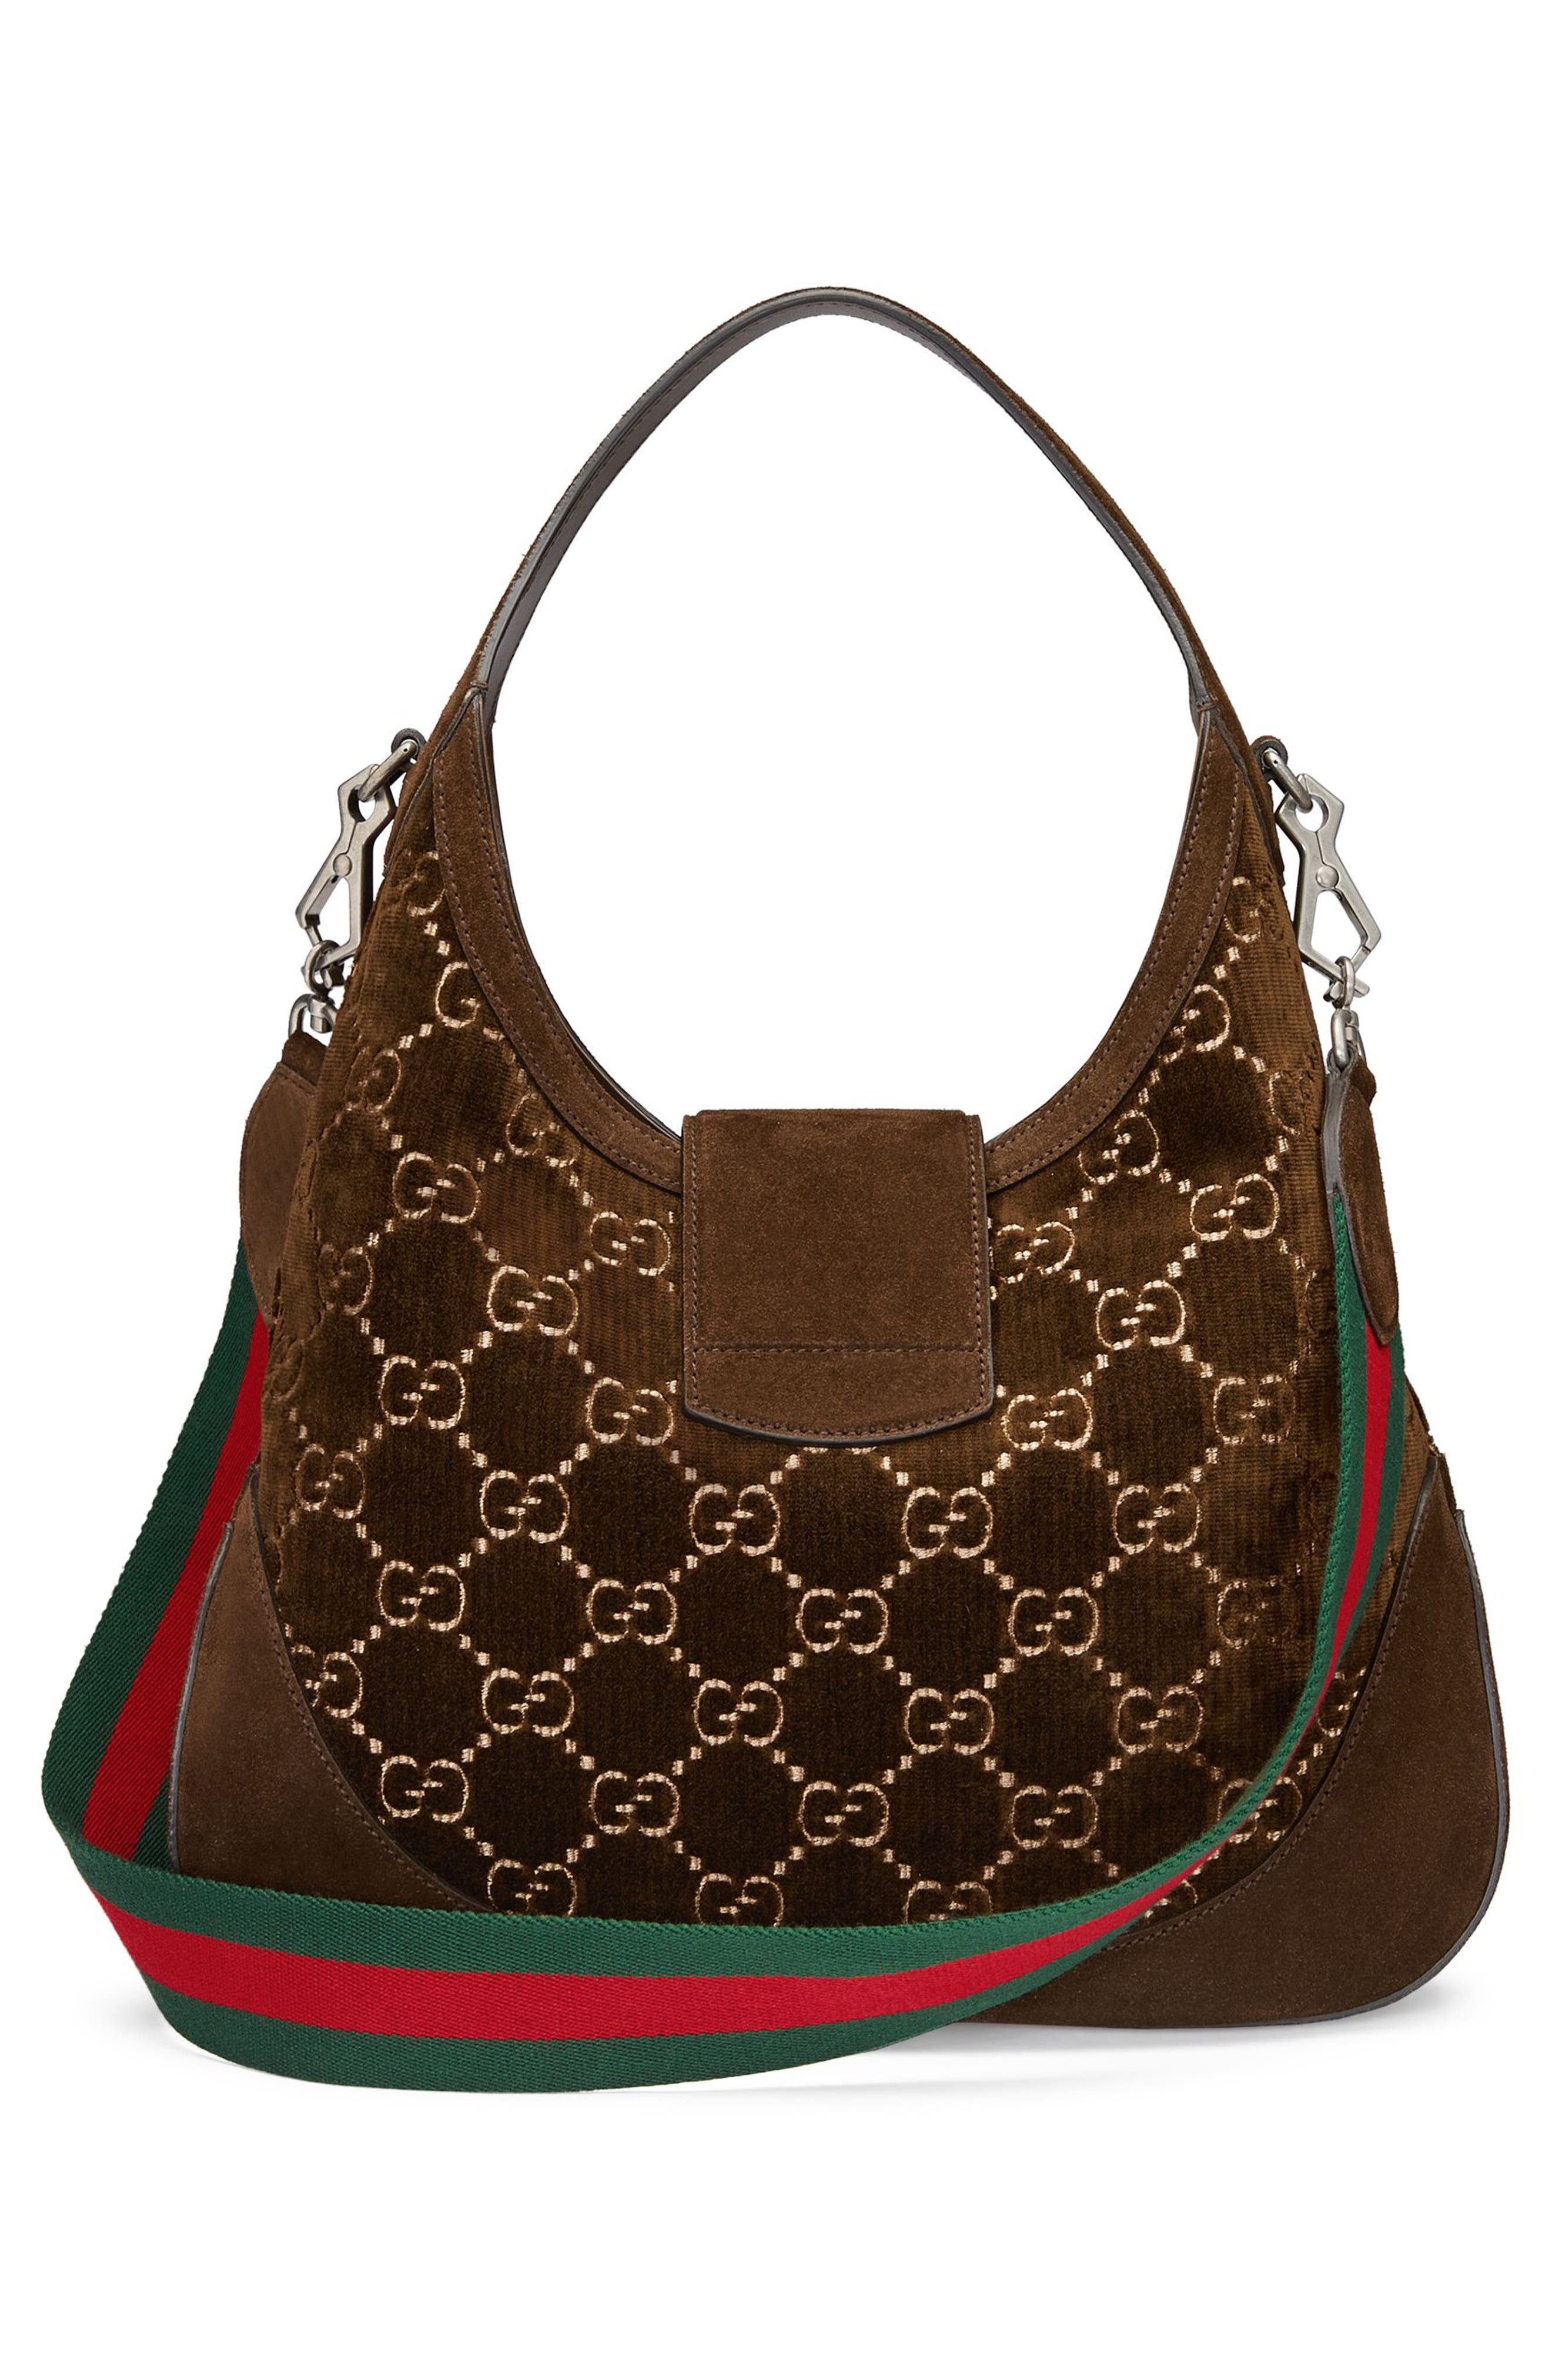 Medium Dionysus GG Velvet Hobo,                             Alternate thumbnail 2, color,                             Brown/ Vert Red Vert